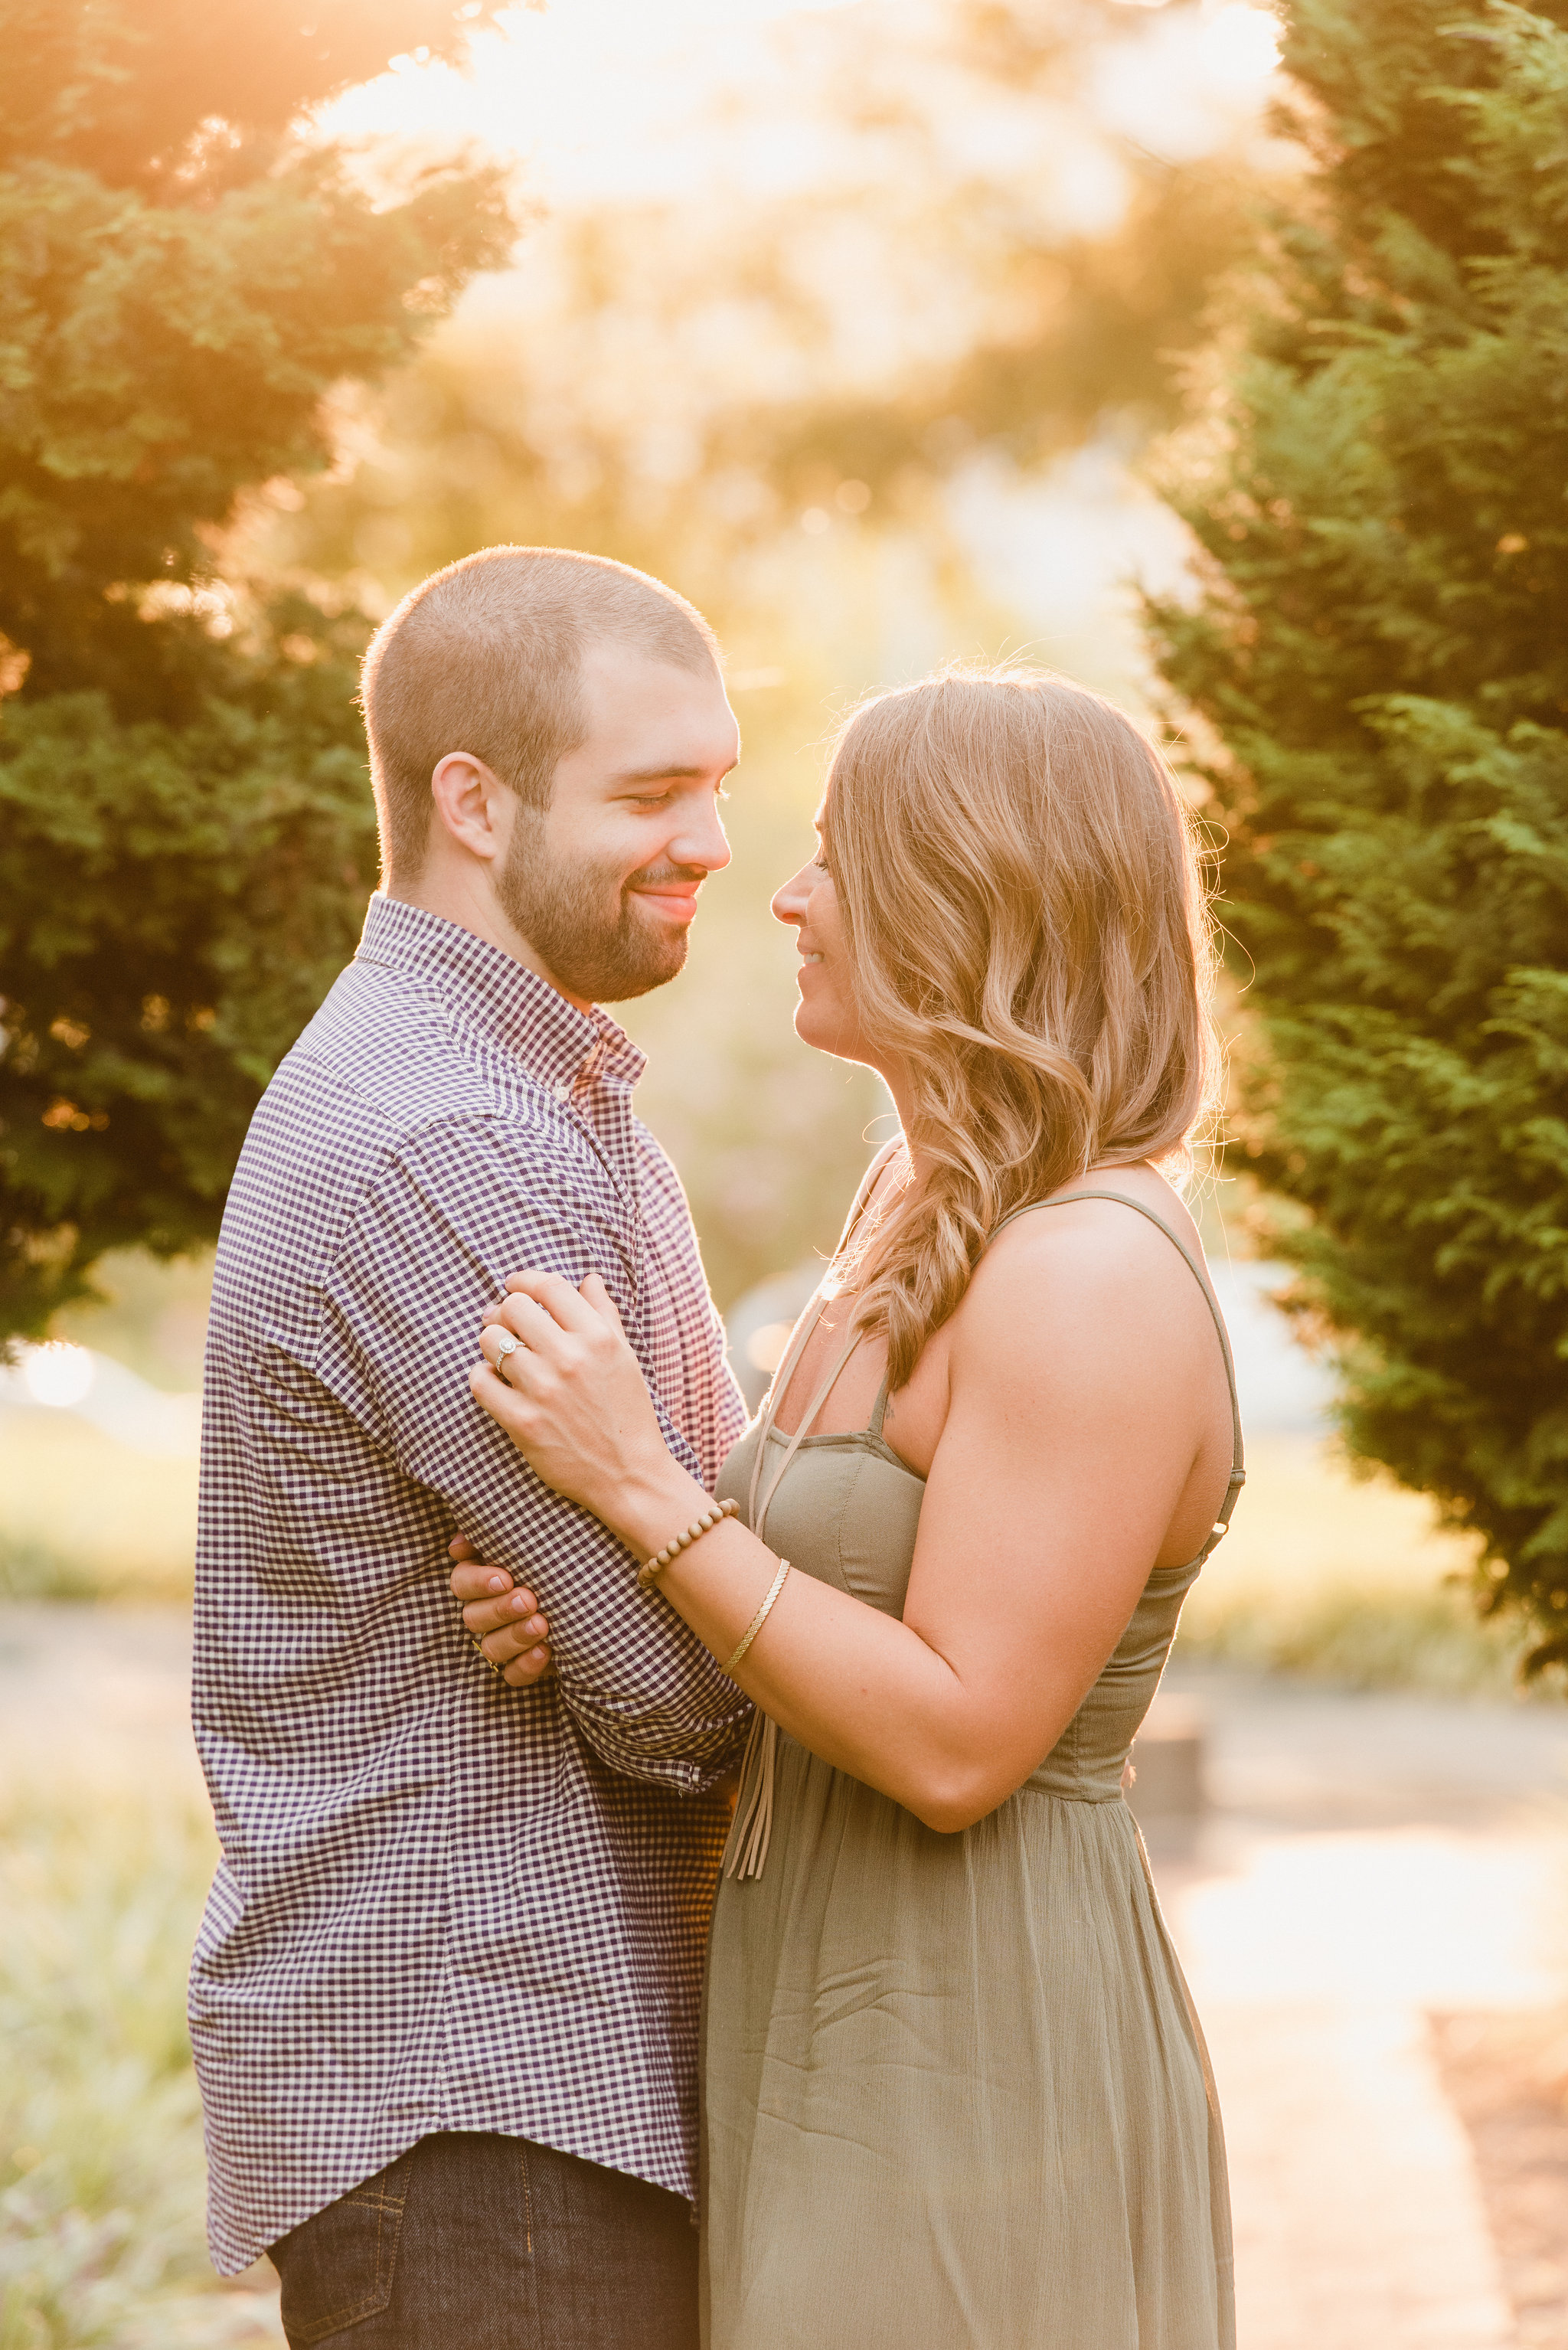 uptown-charlotte-engagement-session-52.jpg